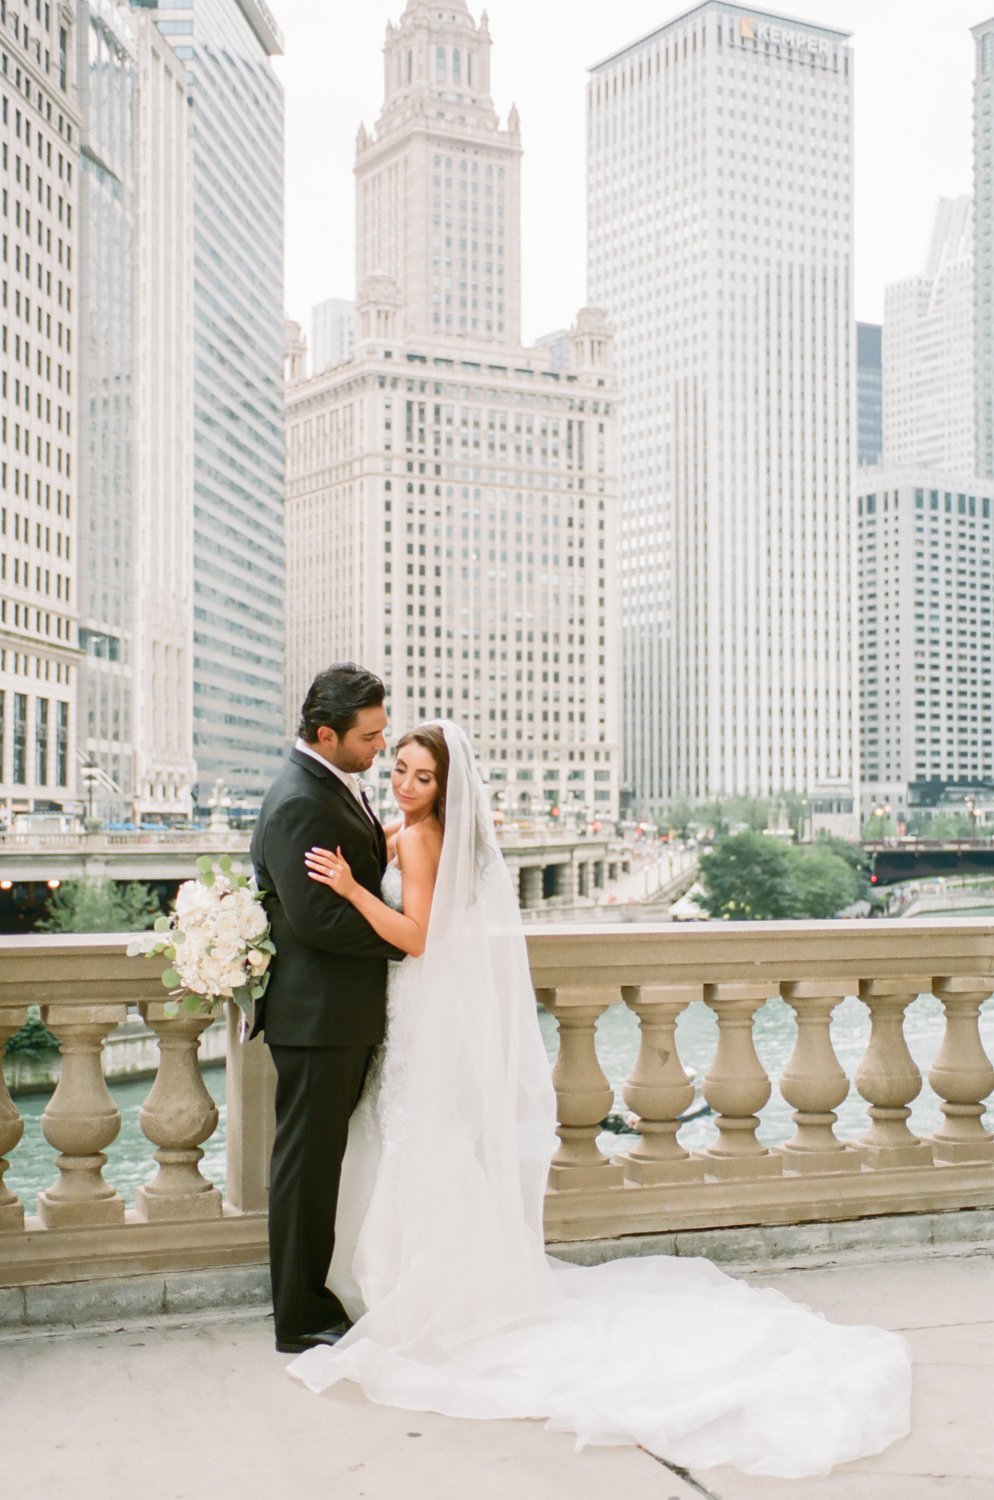 Bride and groom on Michigan Avenue in Chicago, Chicago fine art wedding photography